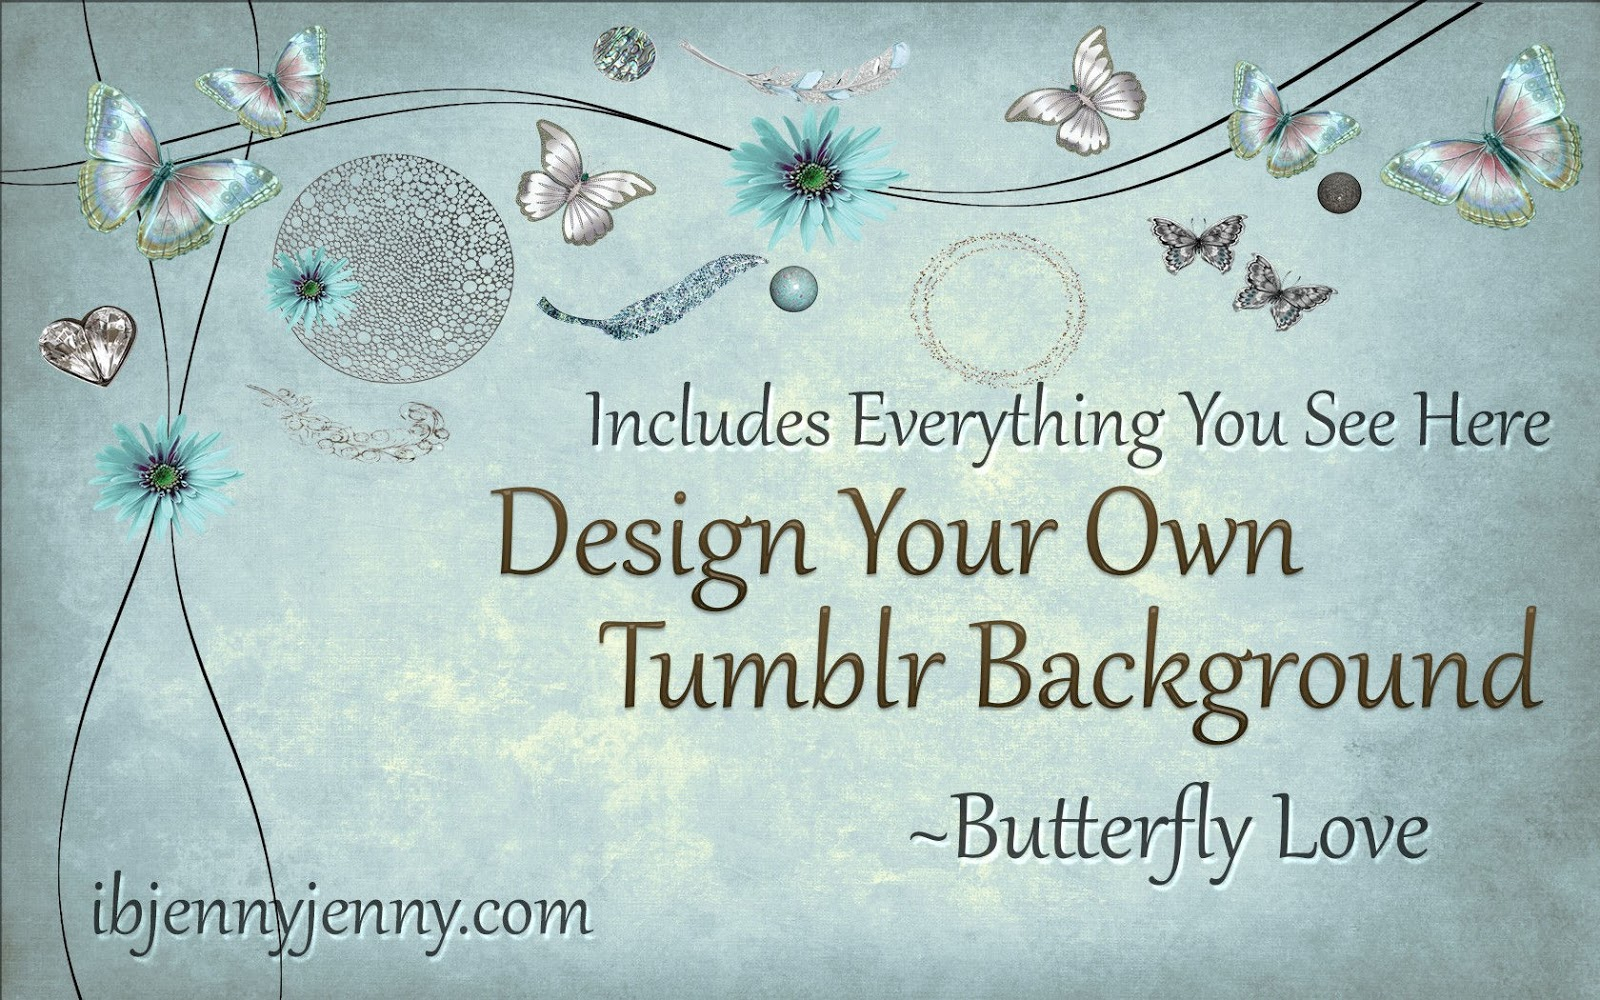 Design your own tumblr background butterfly love for Design your own wallpaper